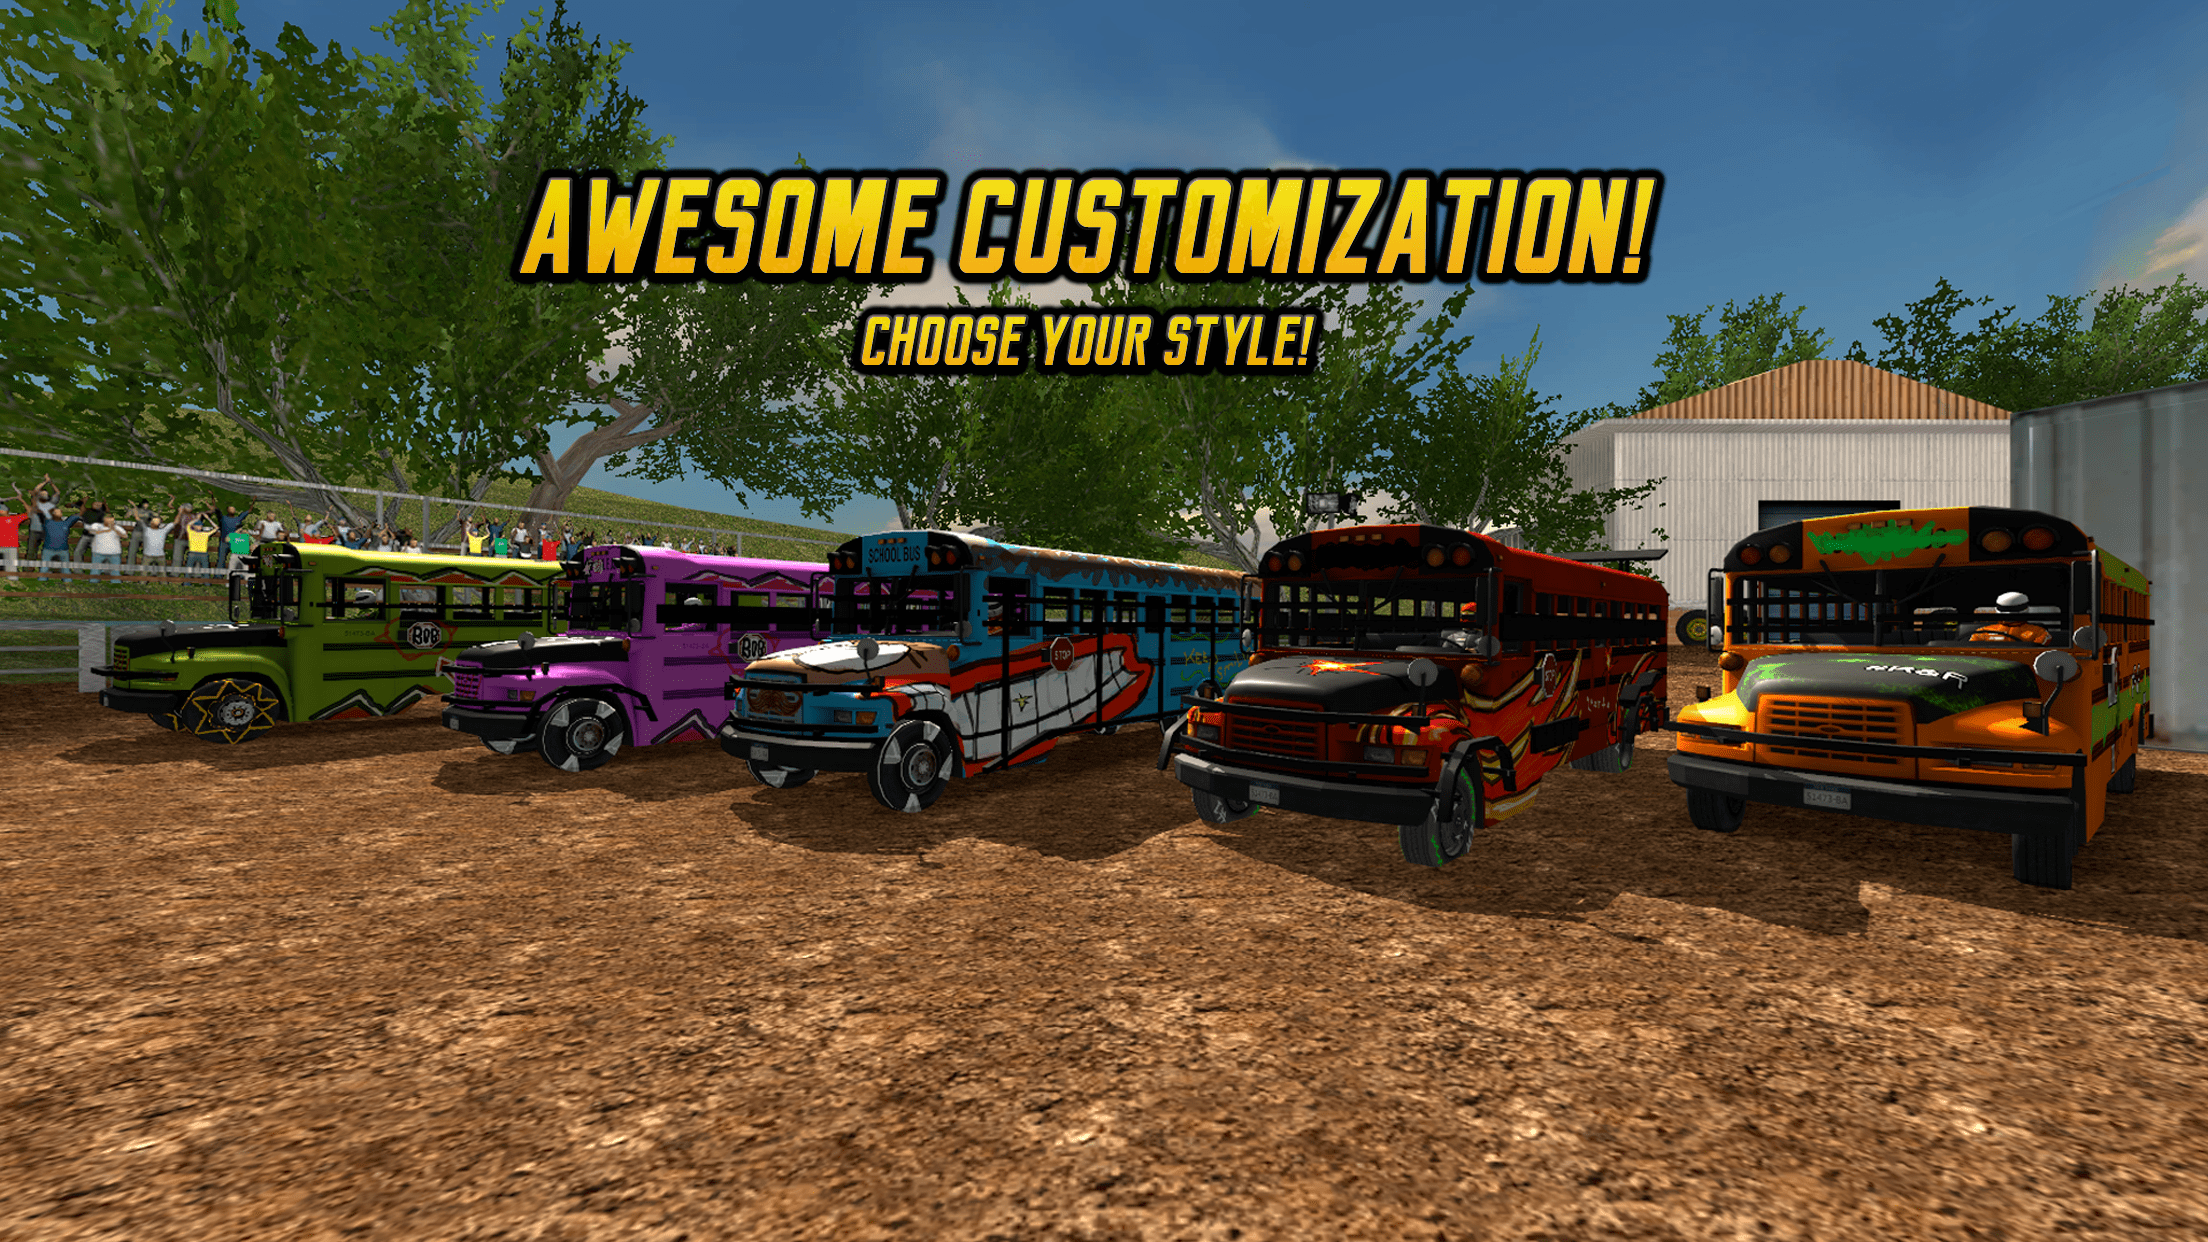 School bus demotilion3